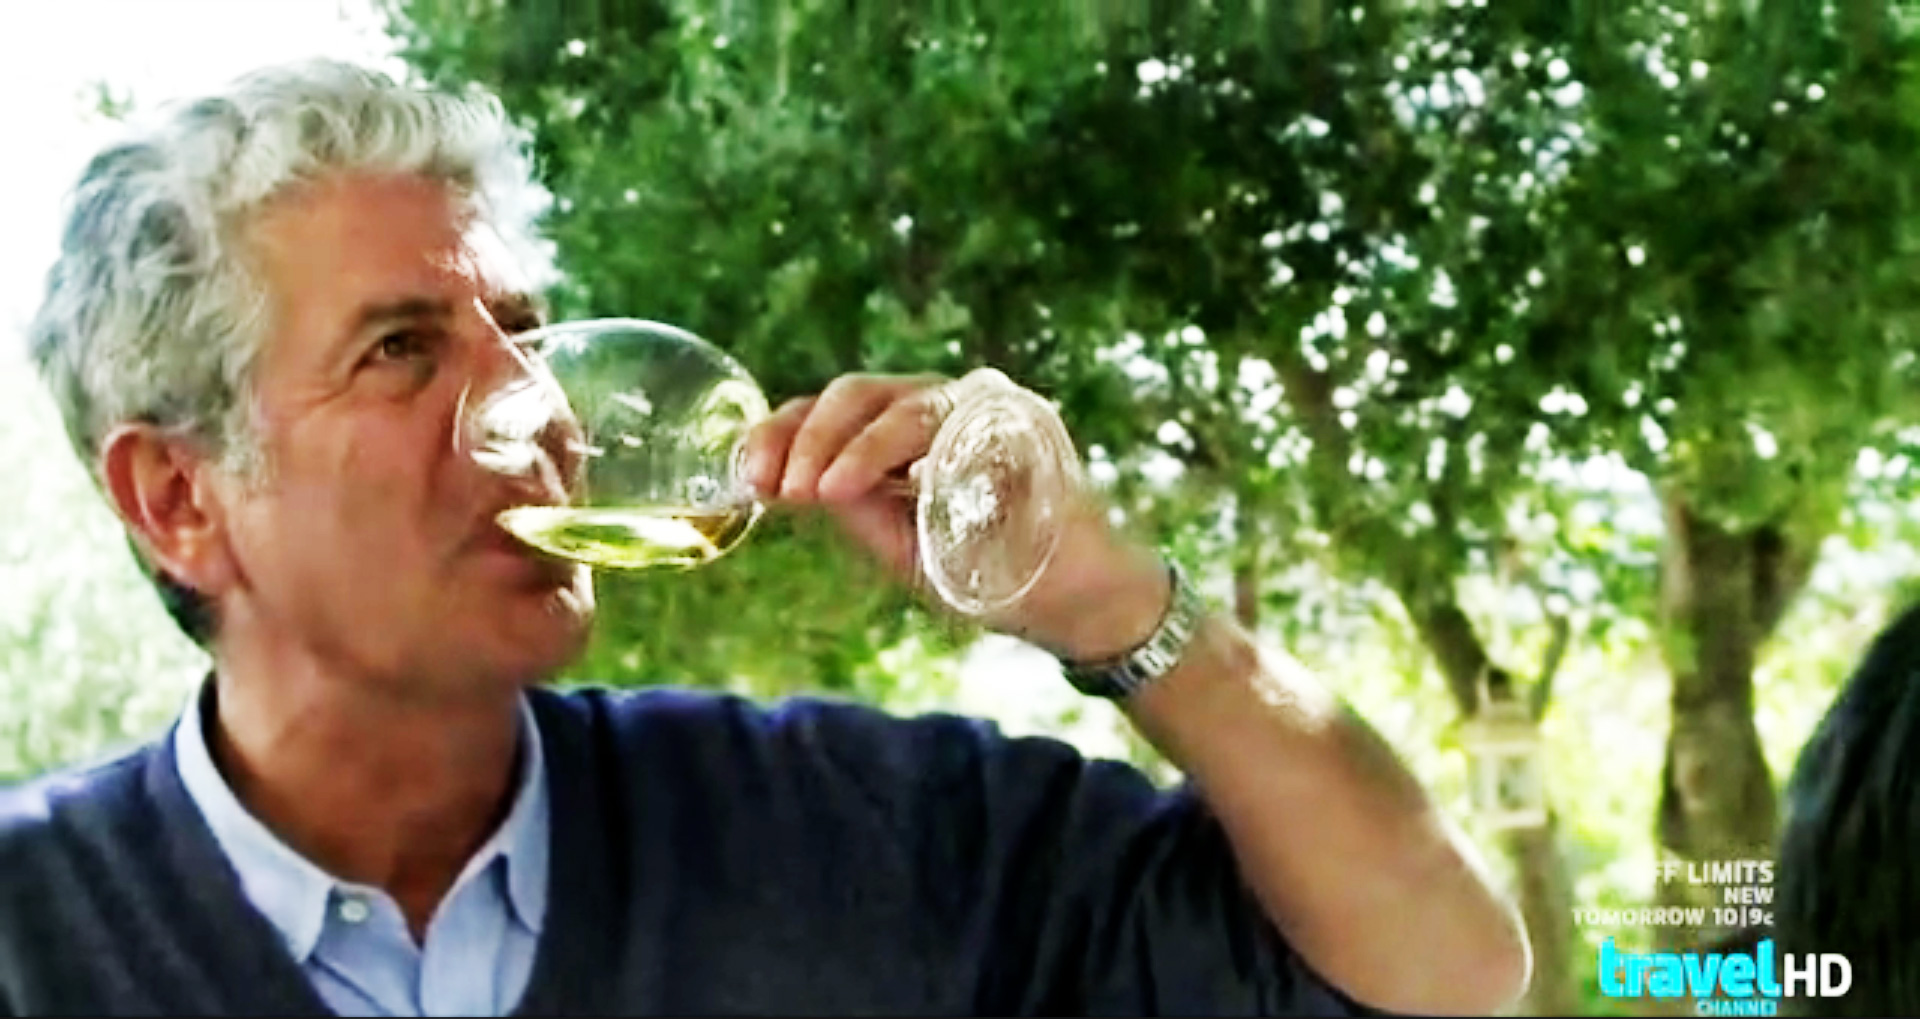 Anthony Bourdain sampling wine in Croatia. Click this image to view the full episode of No Reservations: Croatian Coast.